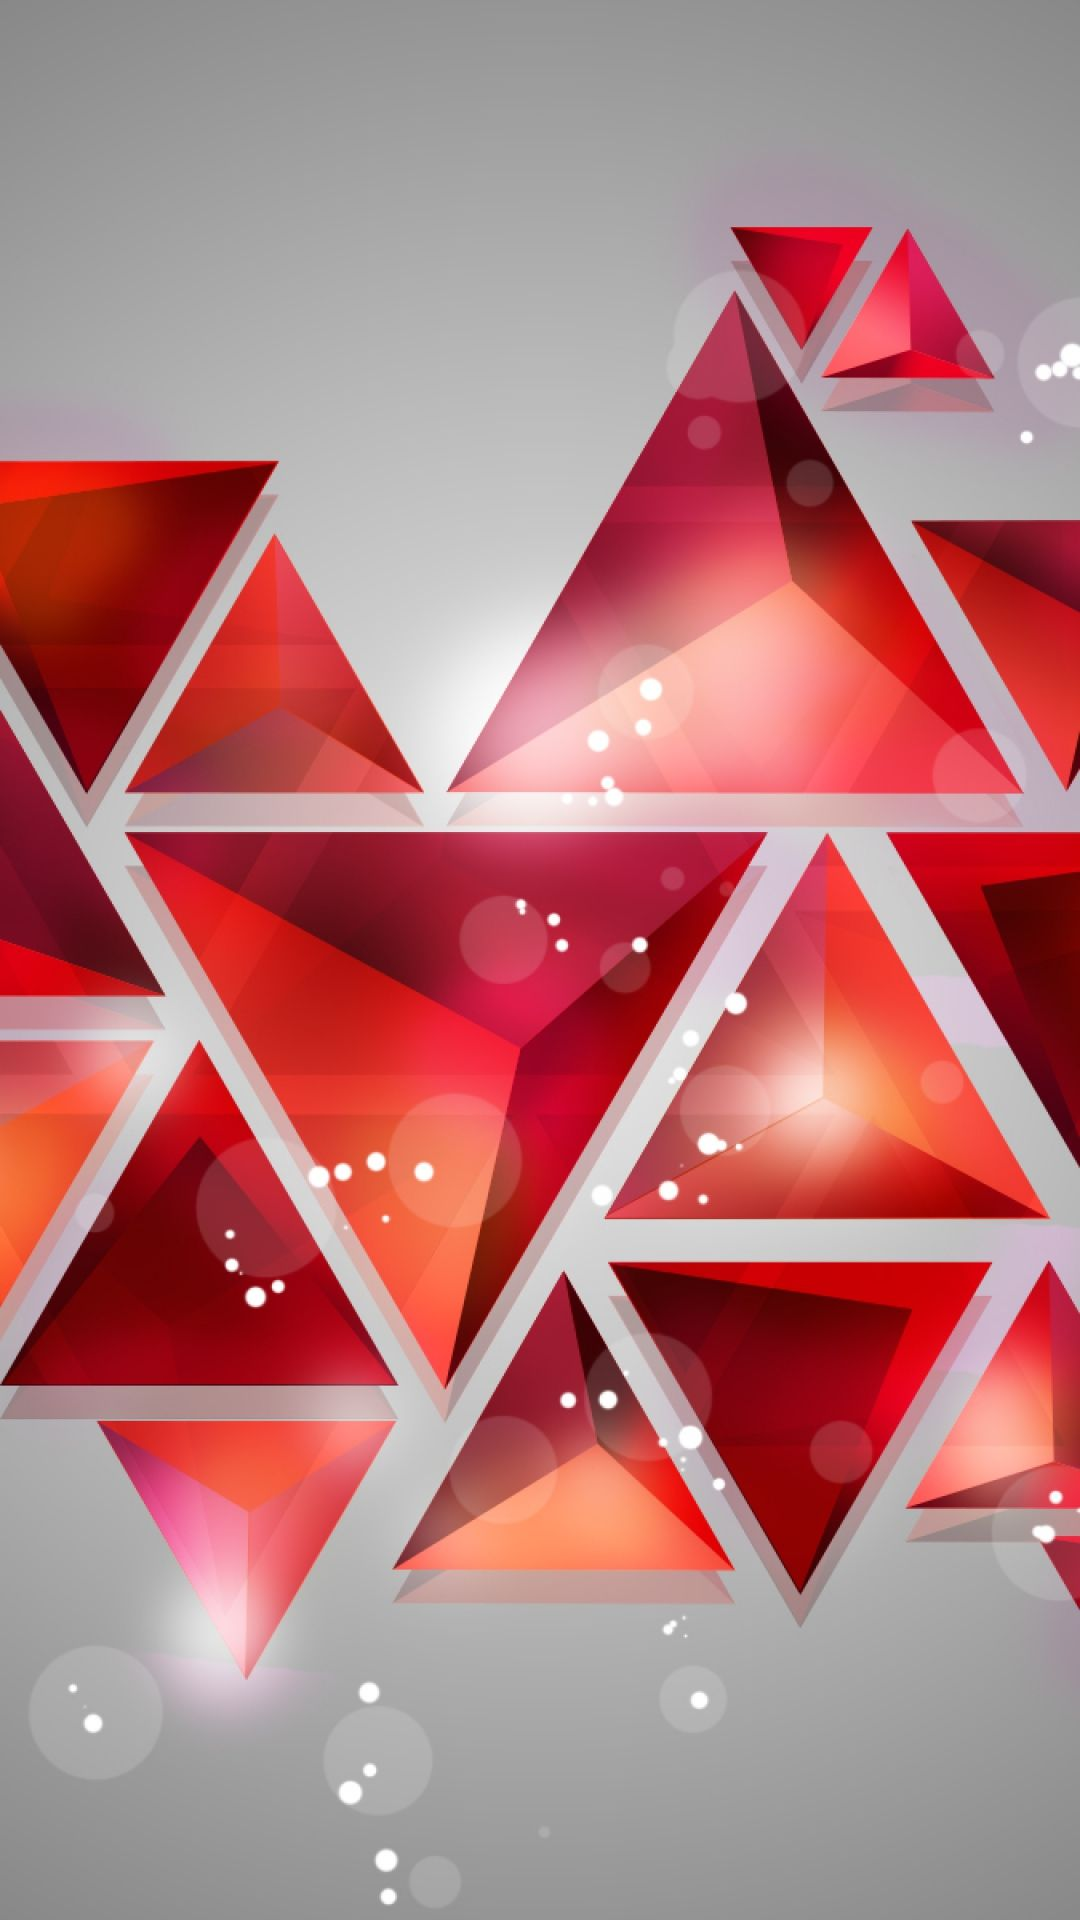 Geometric Shapes Shine. Tap to see more wallpapers